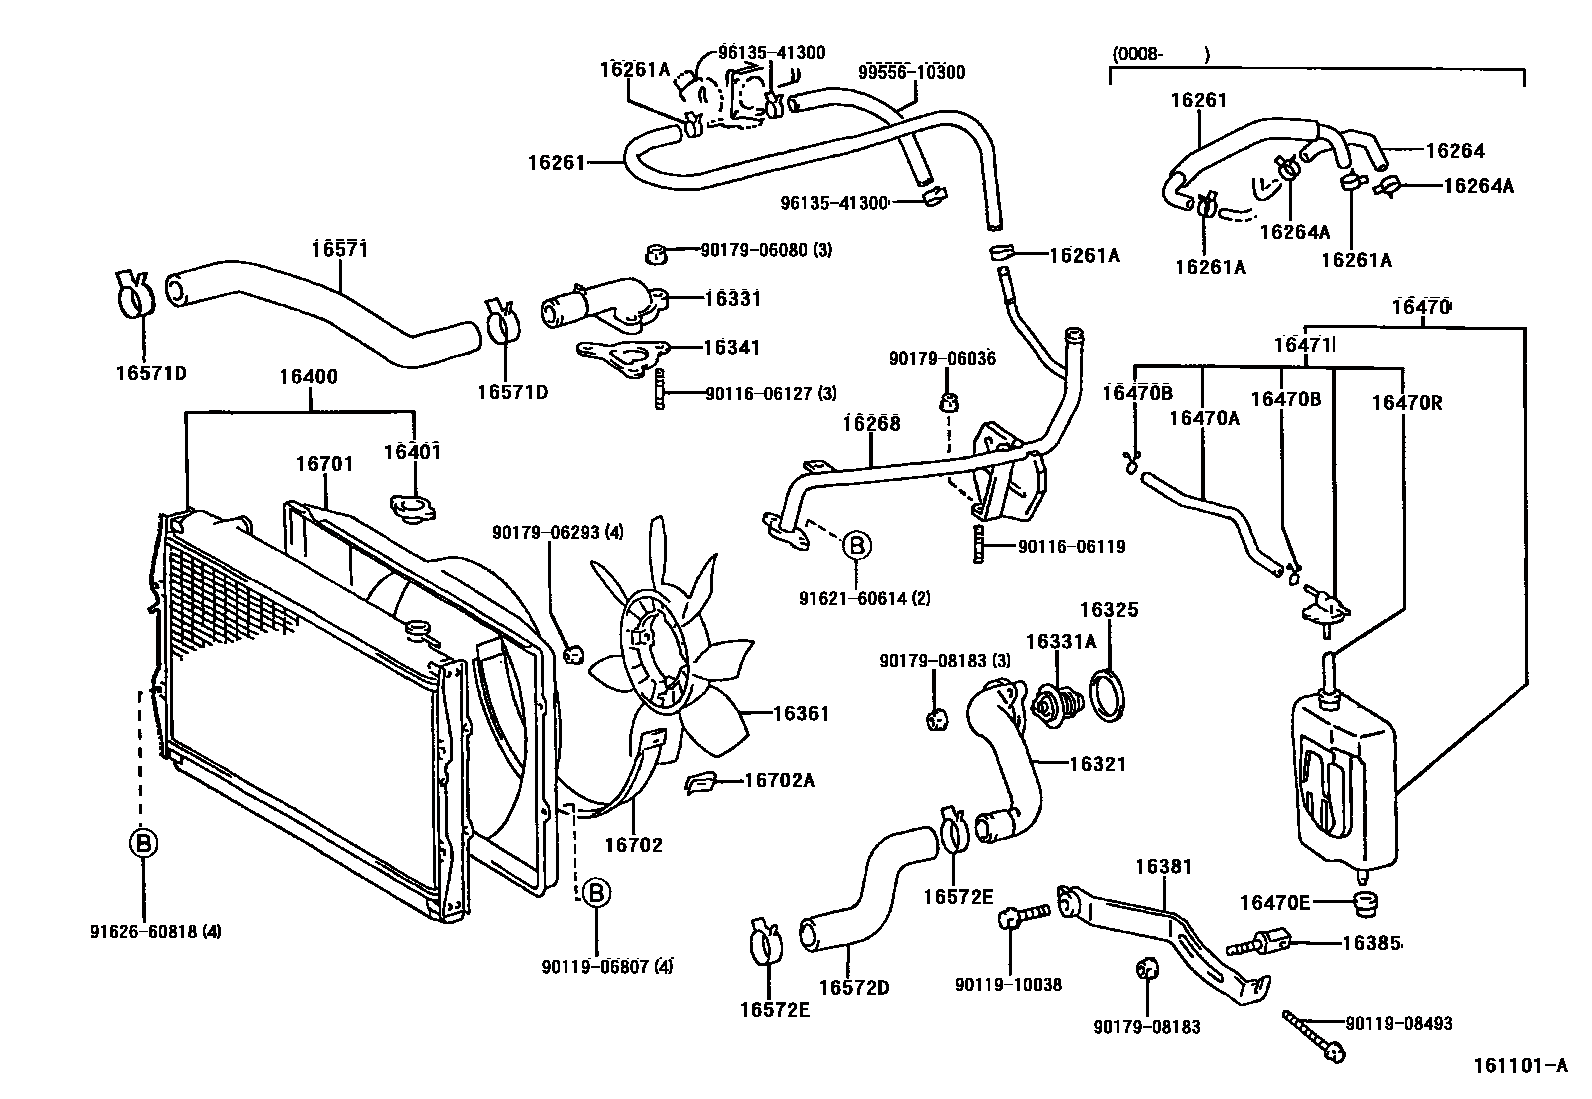 hight resolution of how many coolant hoses are there hoses2 png